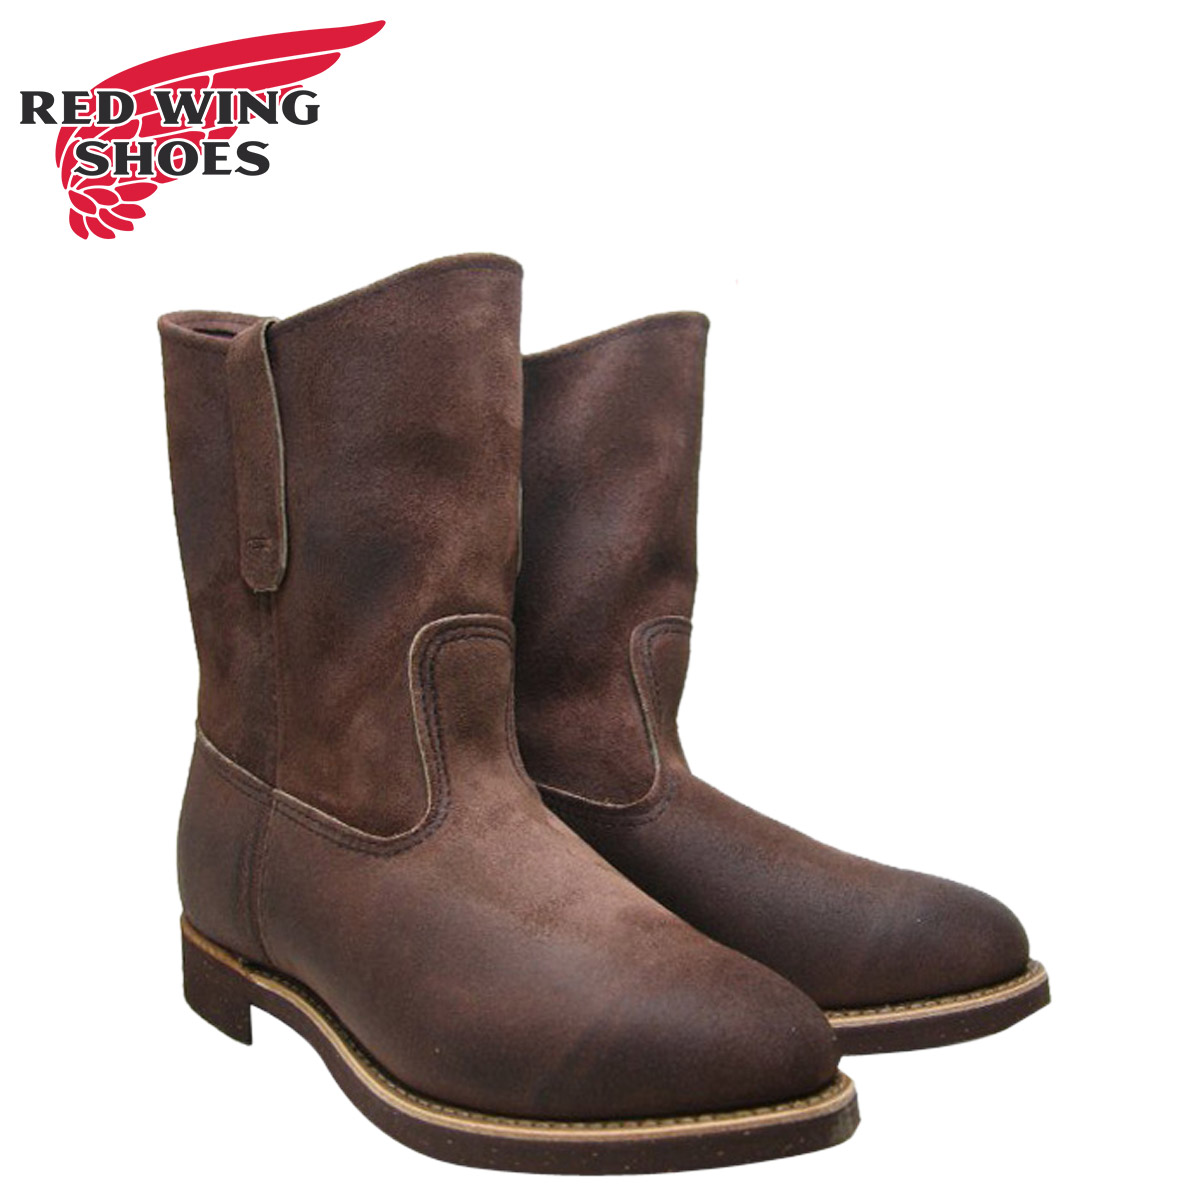 photo relating to Red Wings Boots Printable Coupons called Pink Wing Boots On line Retail outlet - Boot Ri